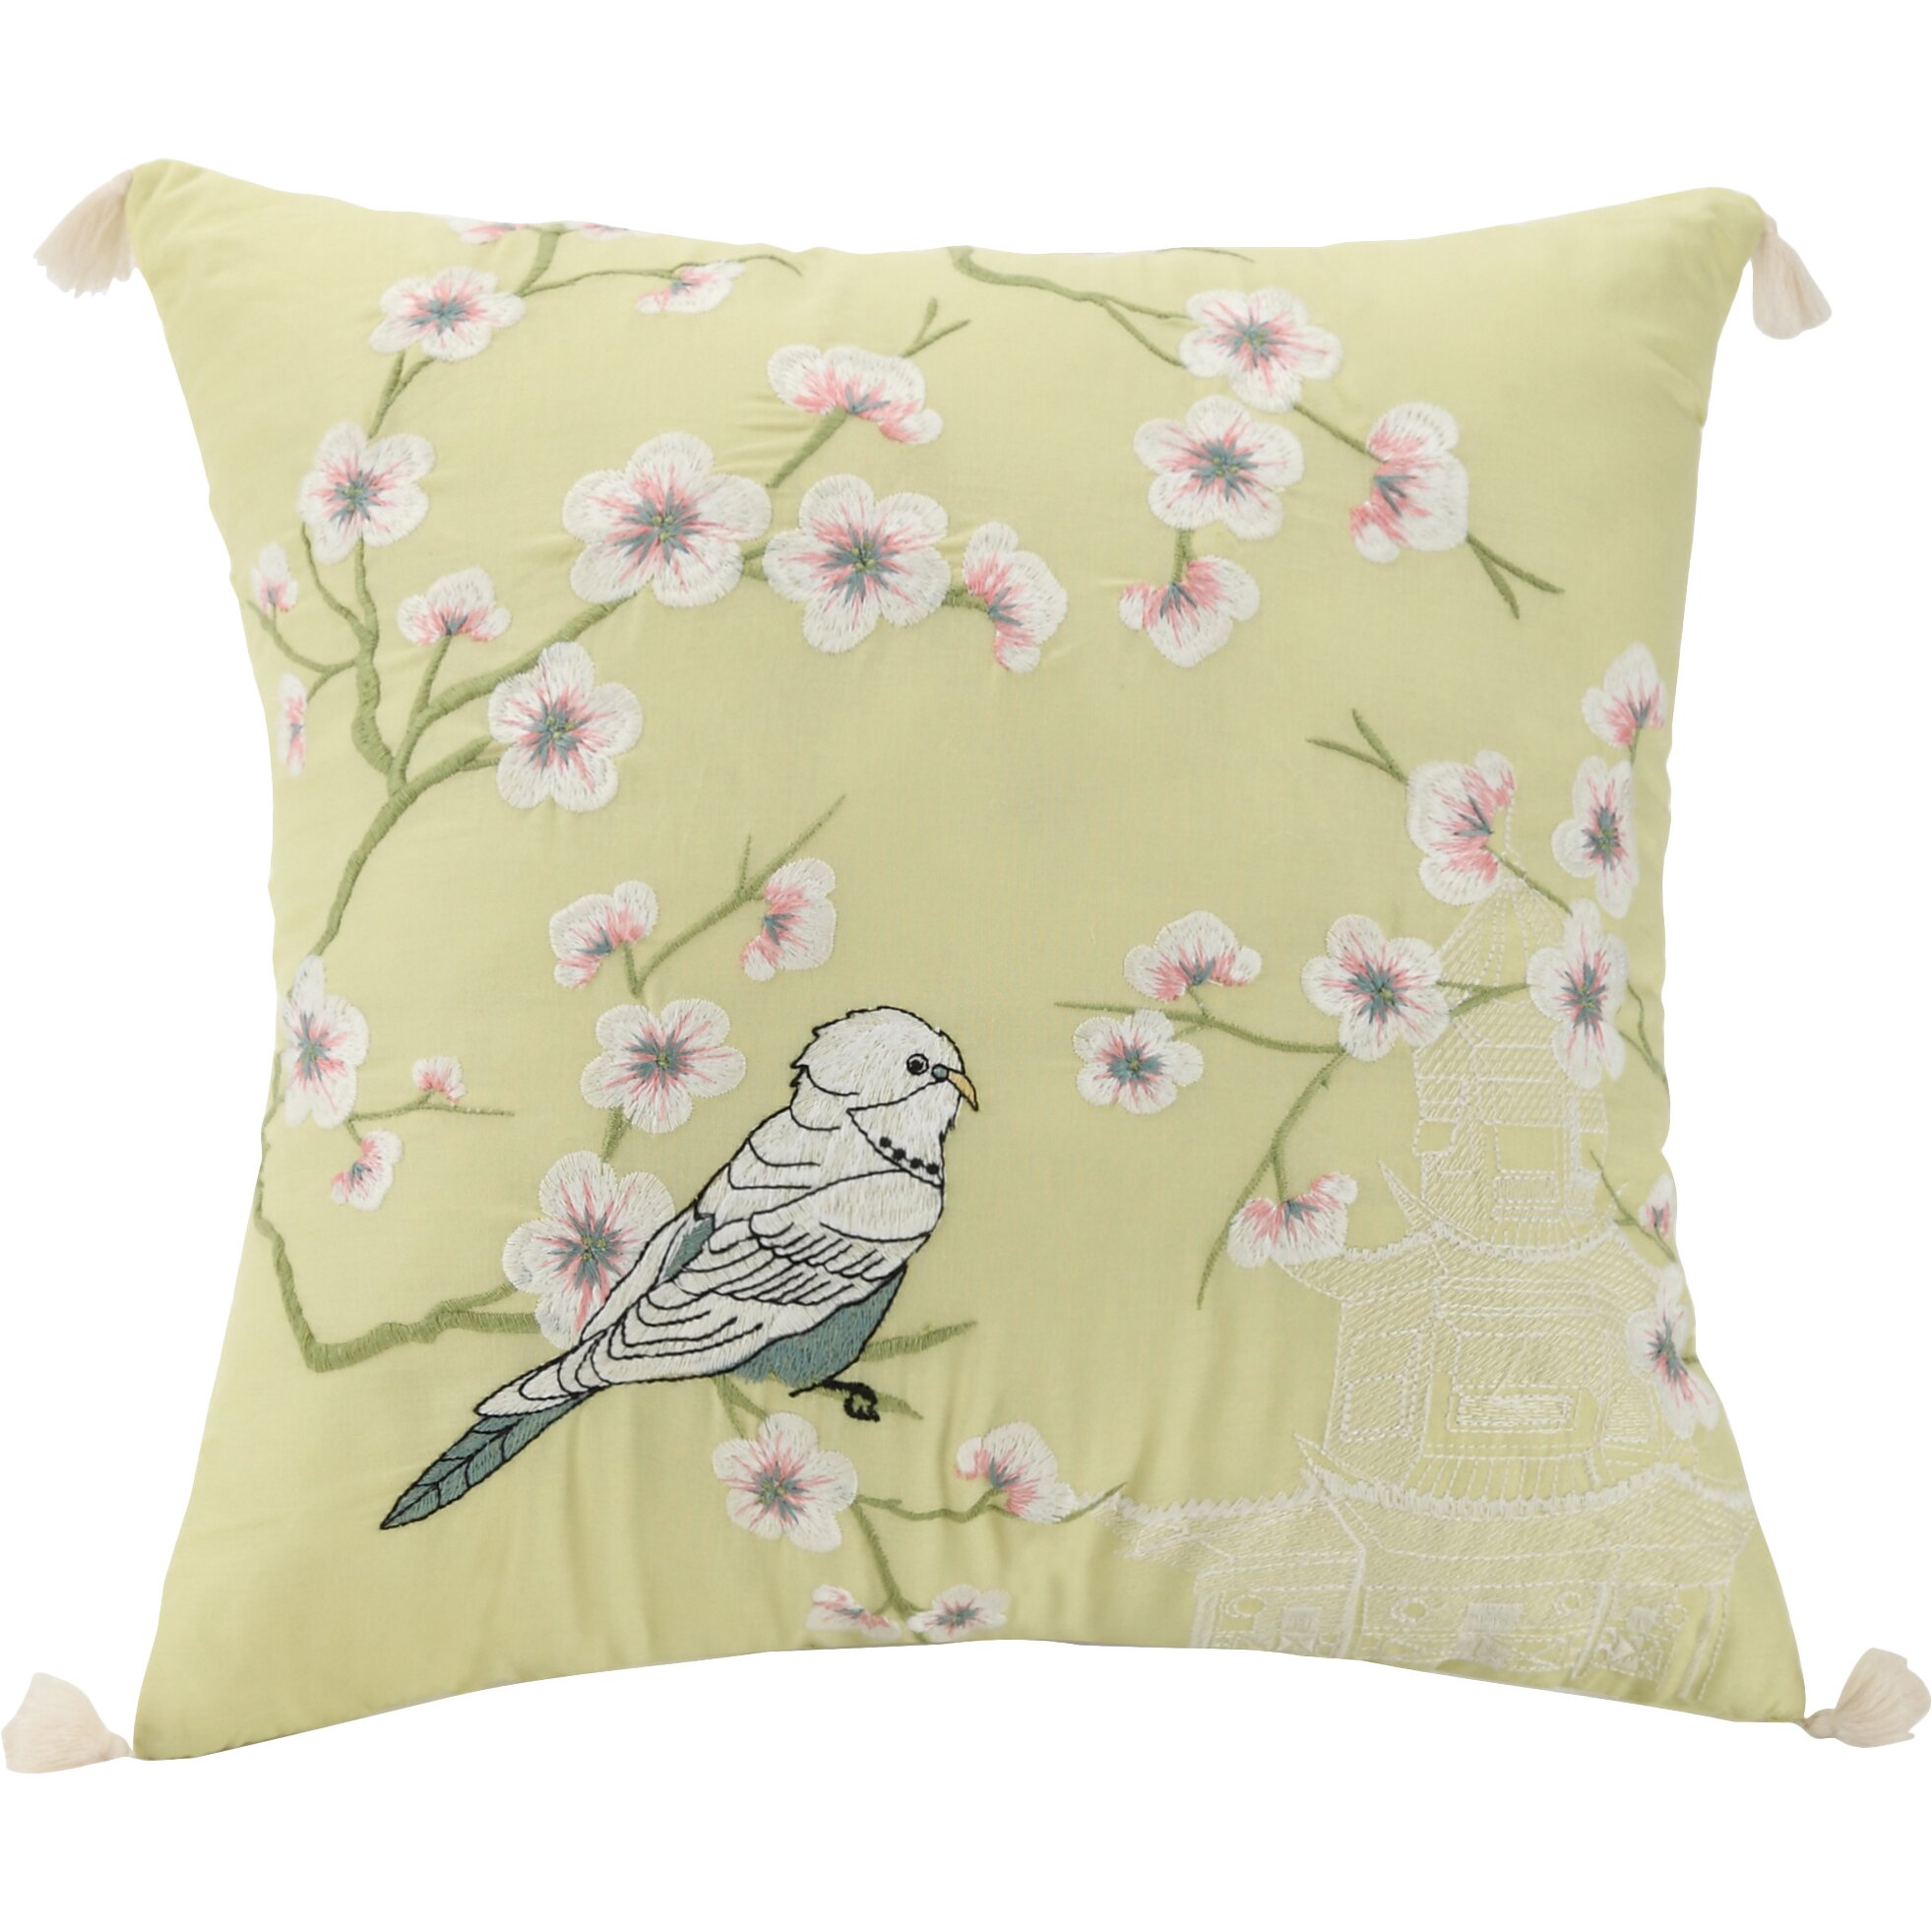 Image Result For Decorative Pillowsa